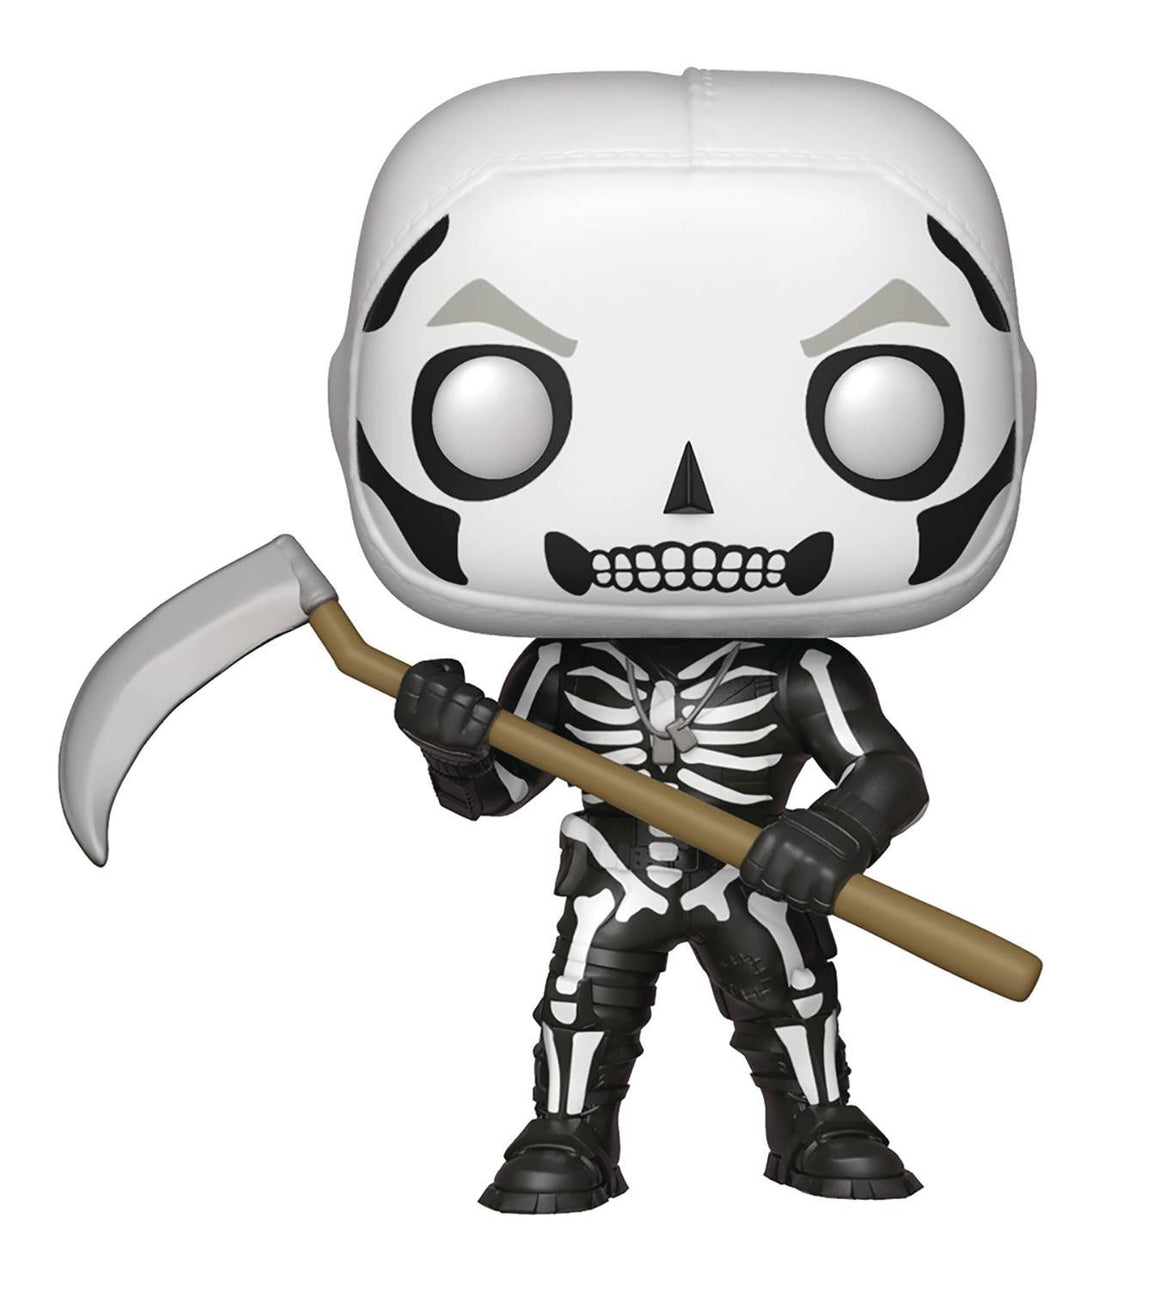 Fortnite: Skull Trooper POP! Vinyl Figure by Funko